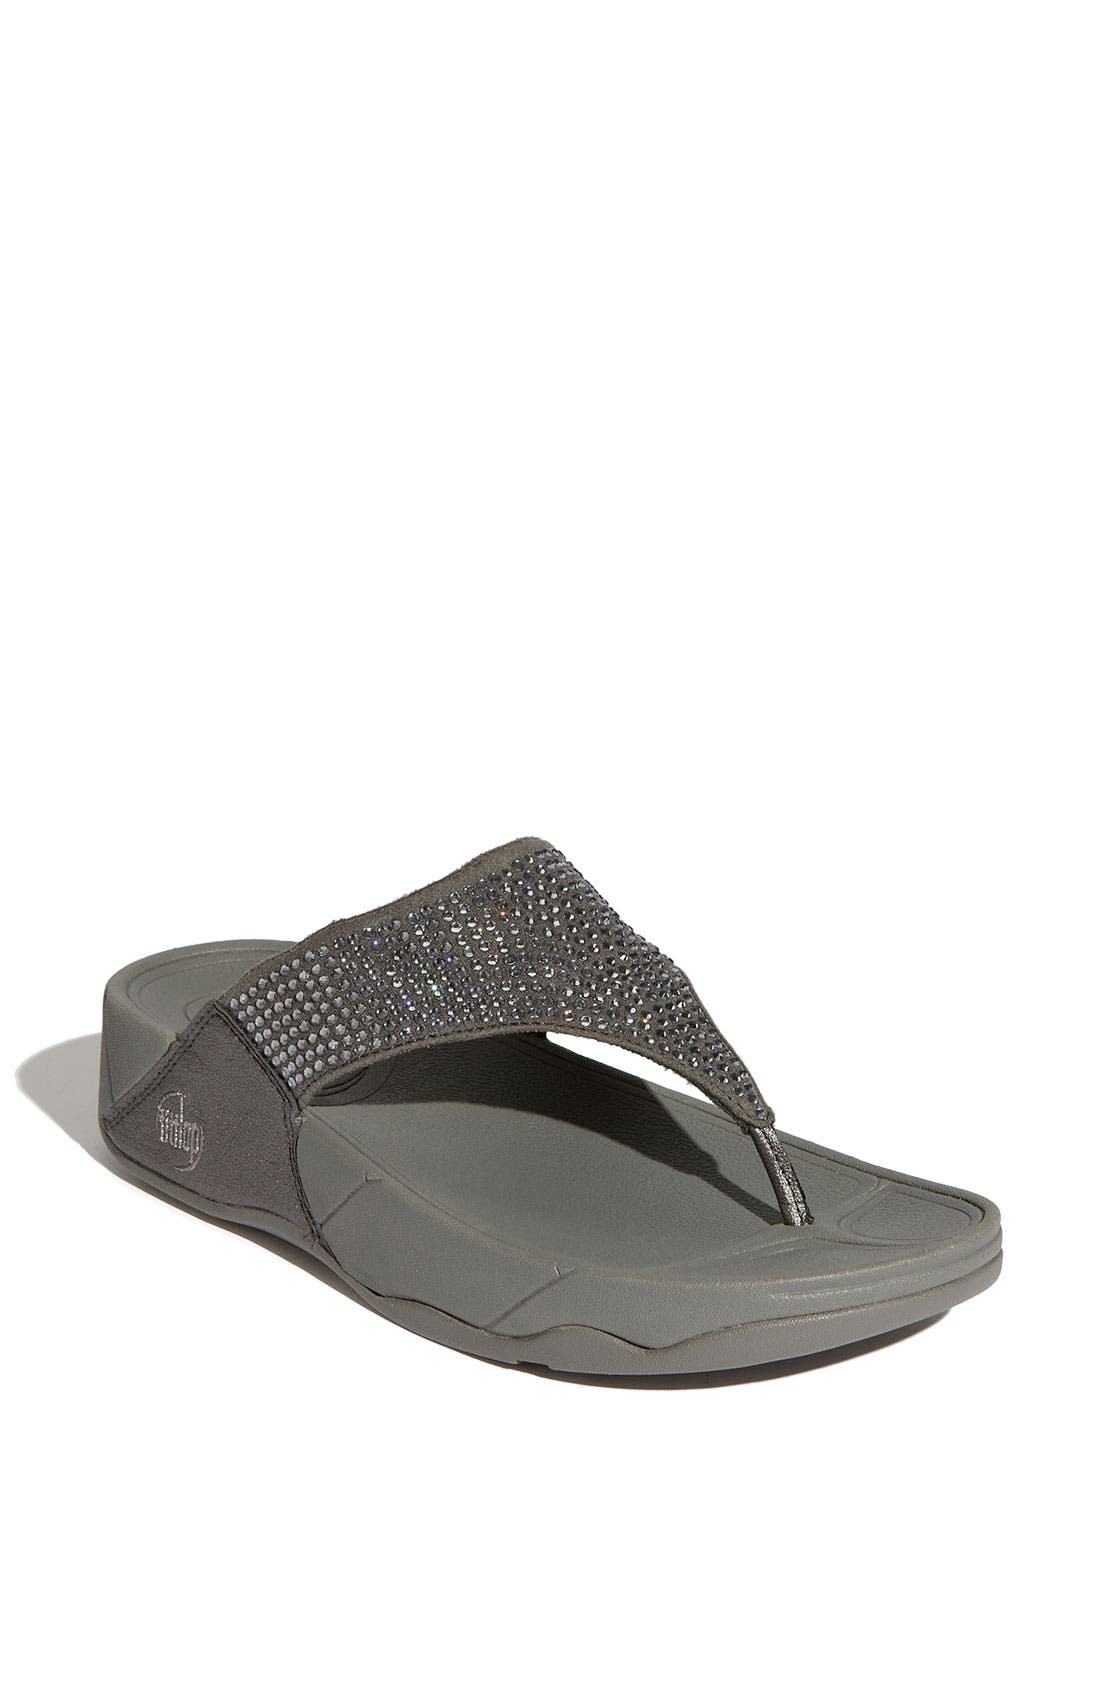 Alternate Image 1 Selected - FitFlop 'Rokkit' Sandal